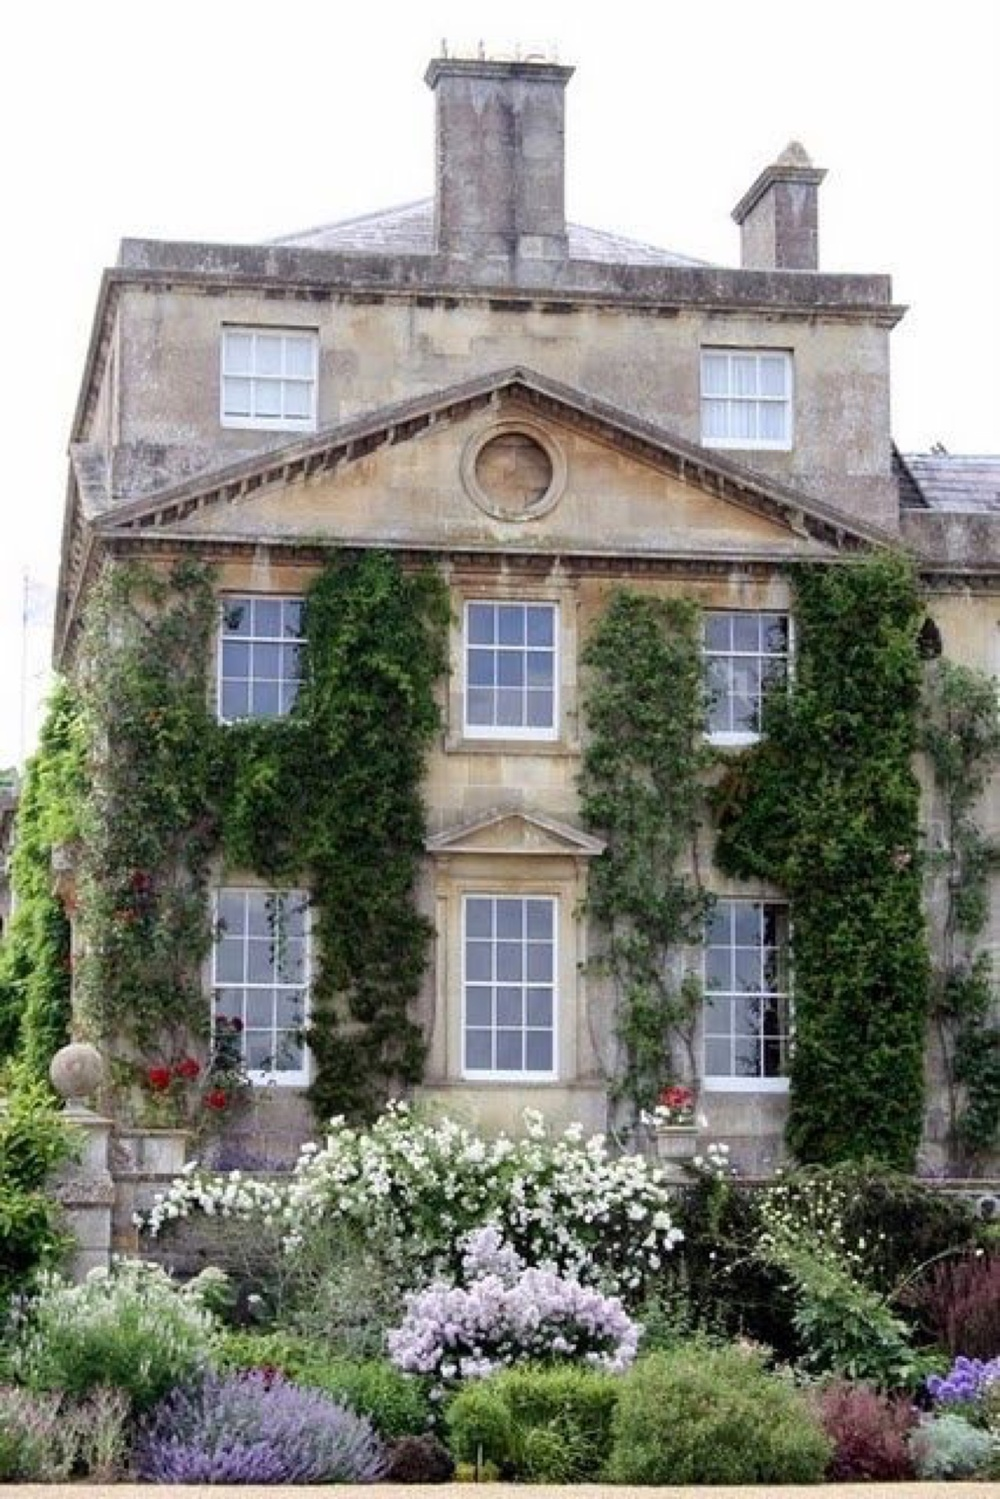 Highgrove, The Home of Charles, Prince of Wales